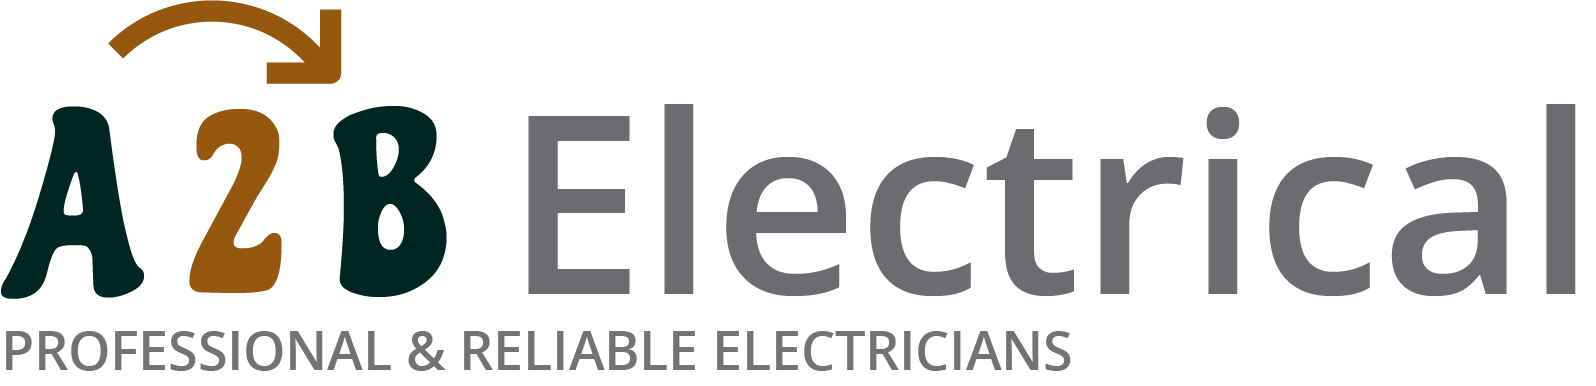 If you have electrical wiring problems in New Eltham, we can provide an electrician to have a look for you.